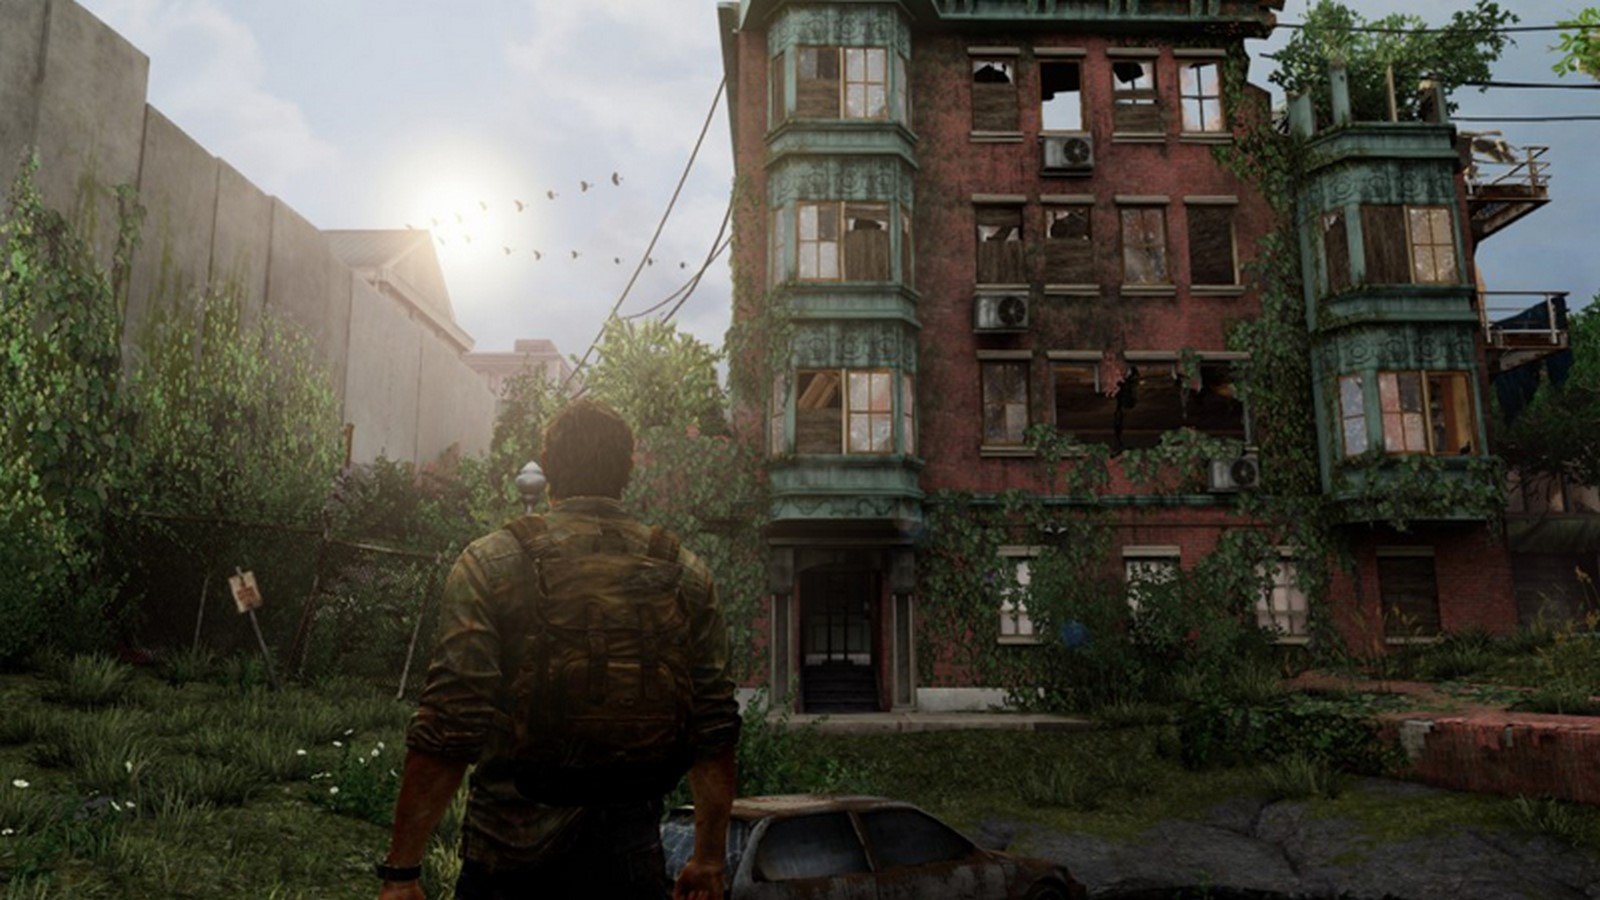 Post Apocalyptic Architecture: through the lens of video games - Sheet4